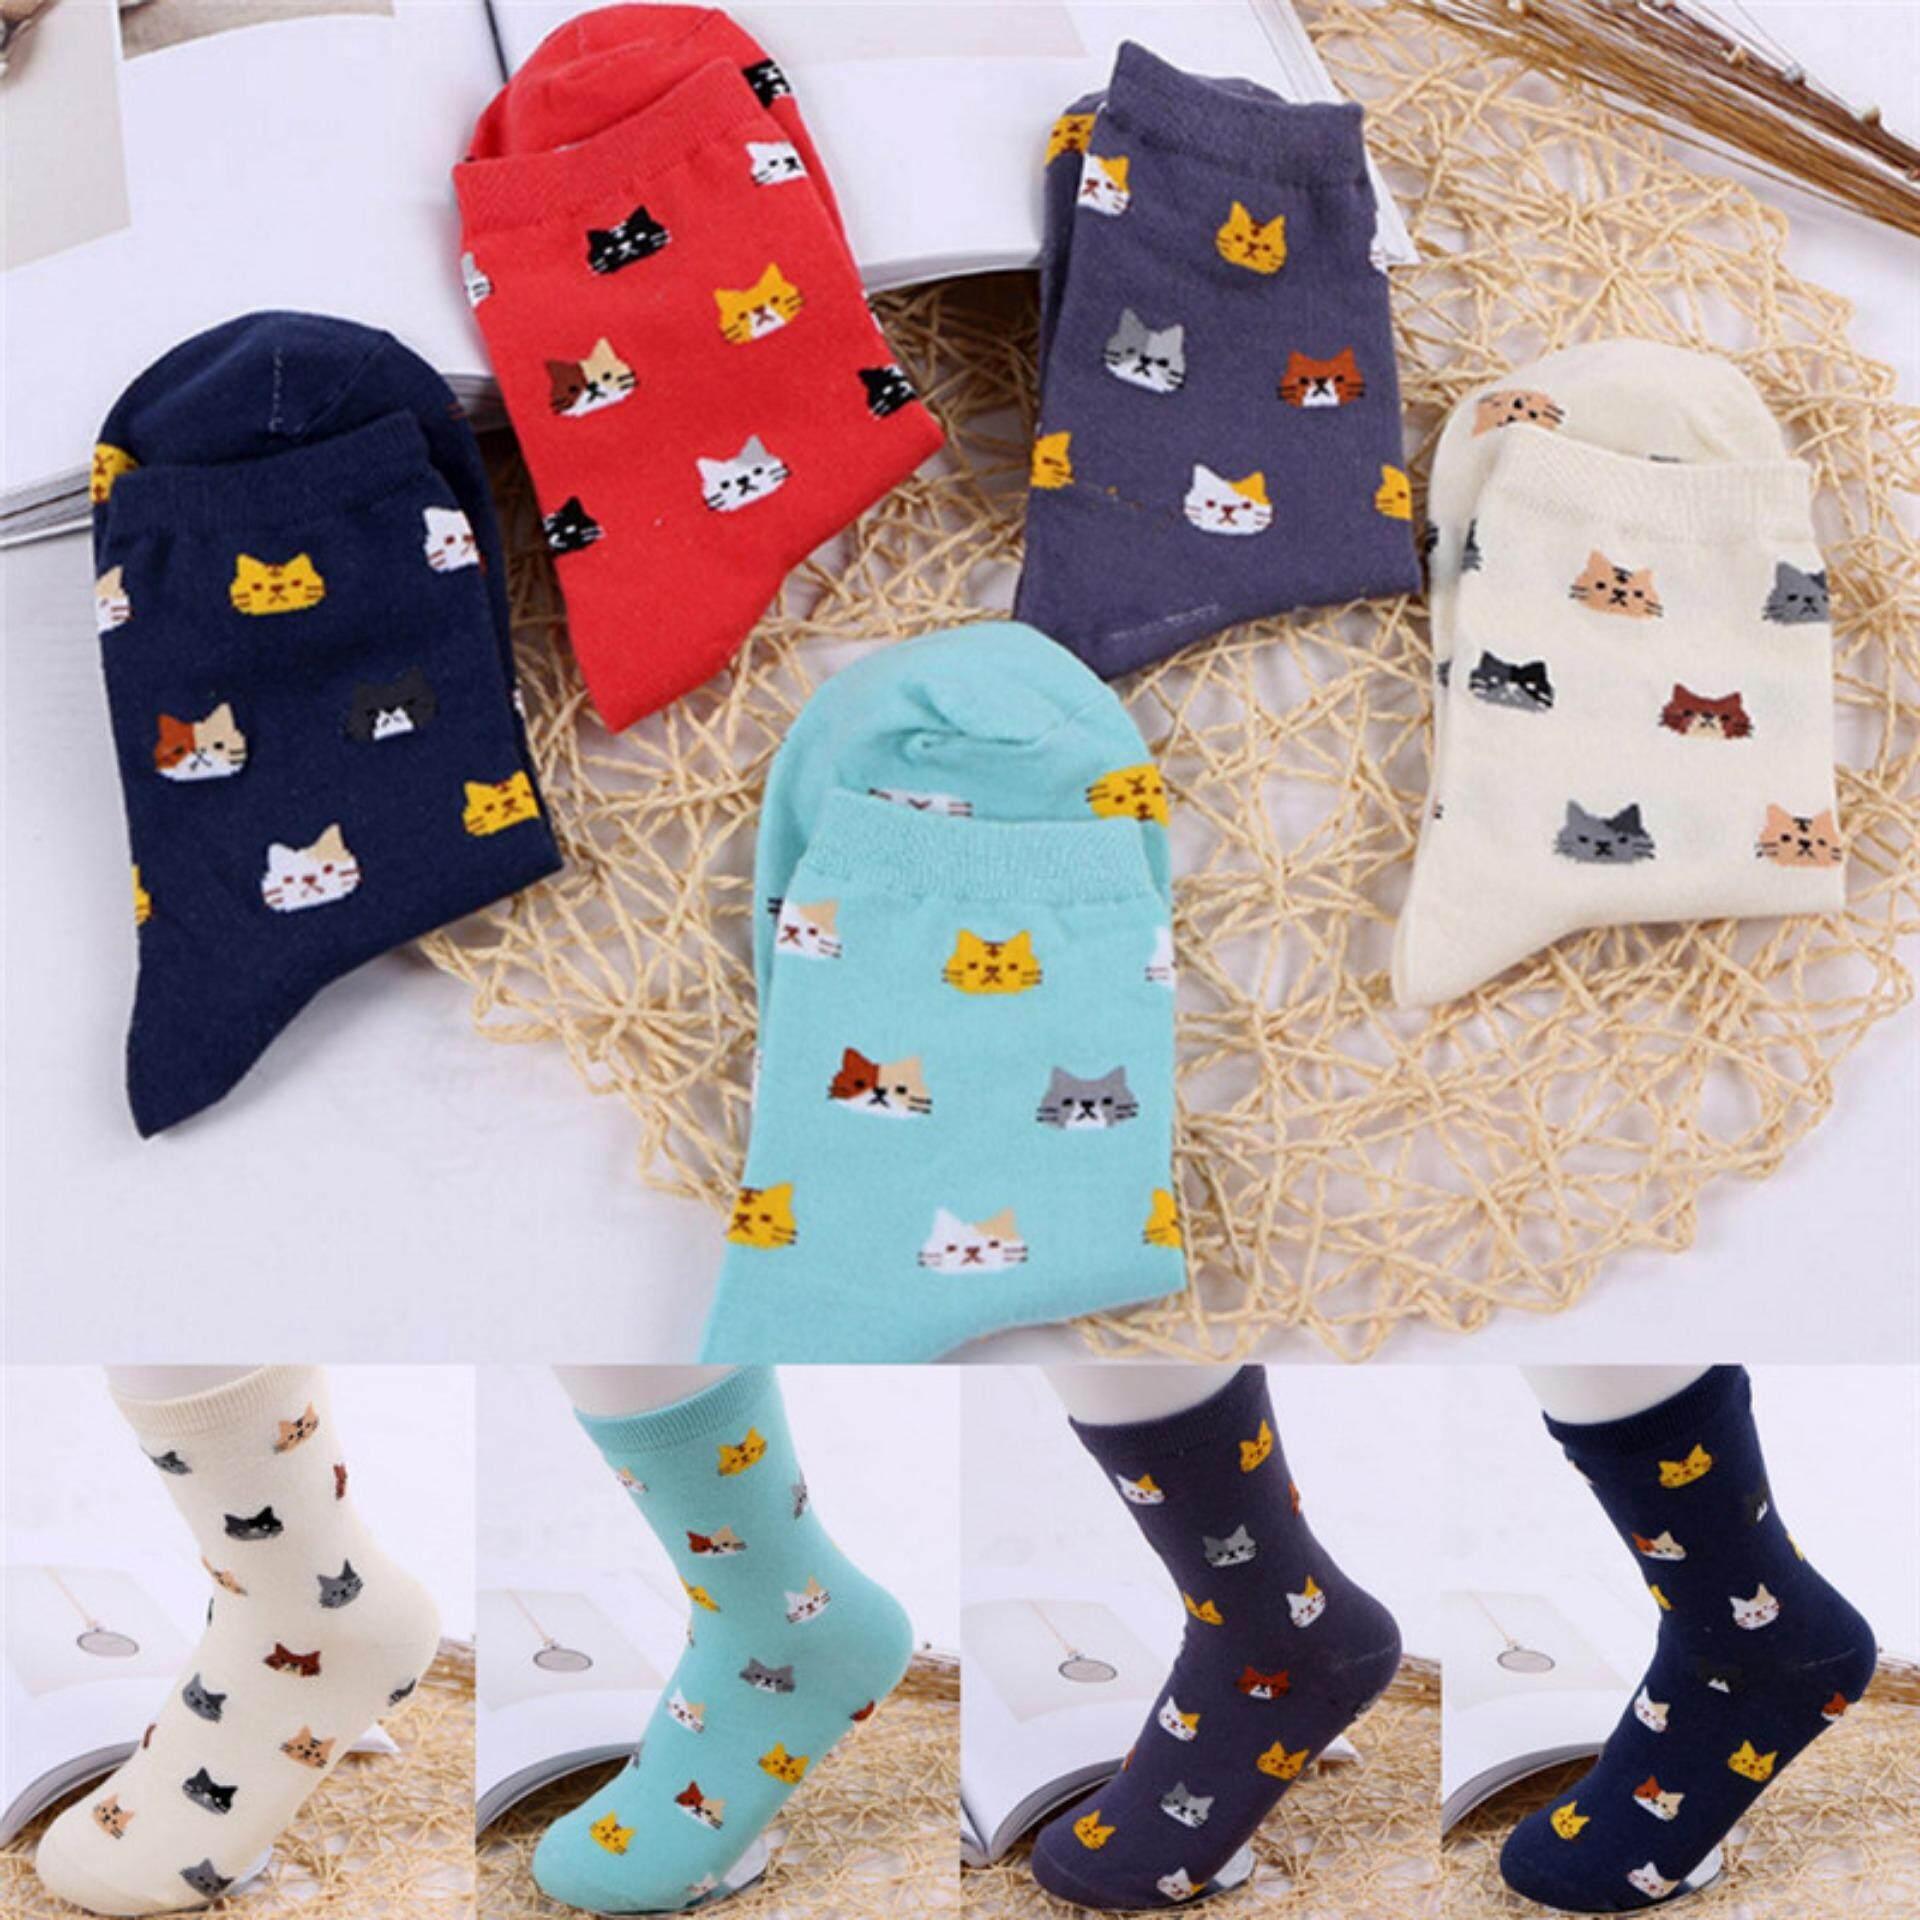 Giá bán Soft Womens Cartoon Stocking Cat Footprints Striped Lovely Style Girls Cotton Socks - intl